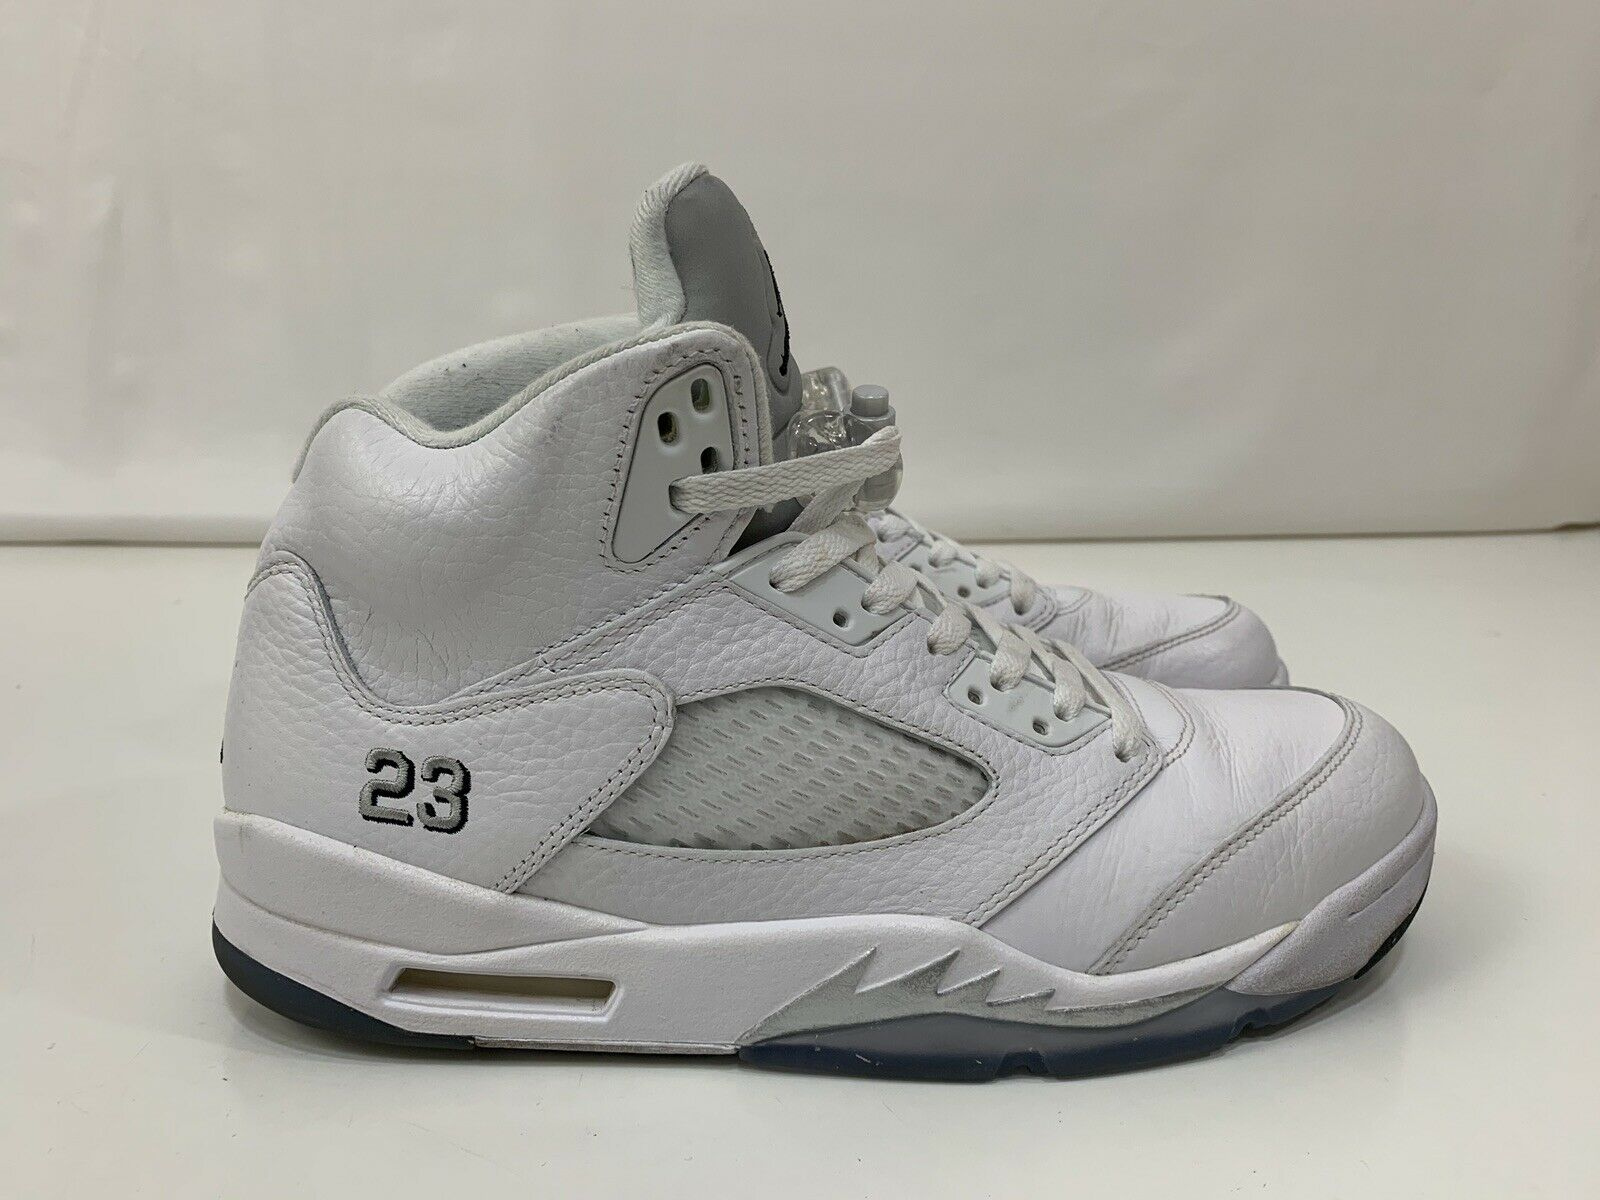 2015 AIR JORDAN 5 RETRO  METALLIC WHITE  136027-130 MENS SZ 8.5 Silver